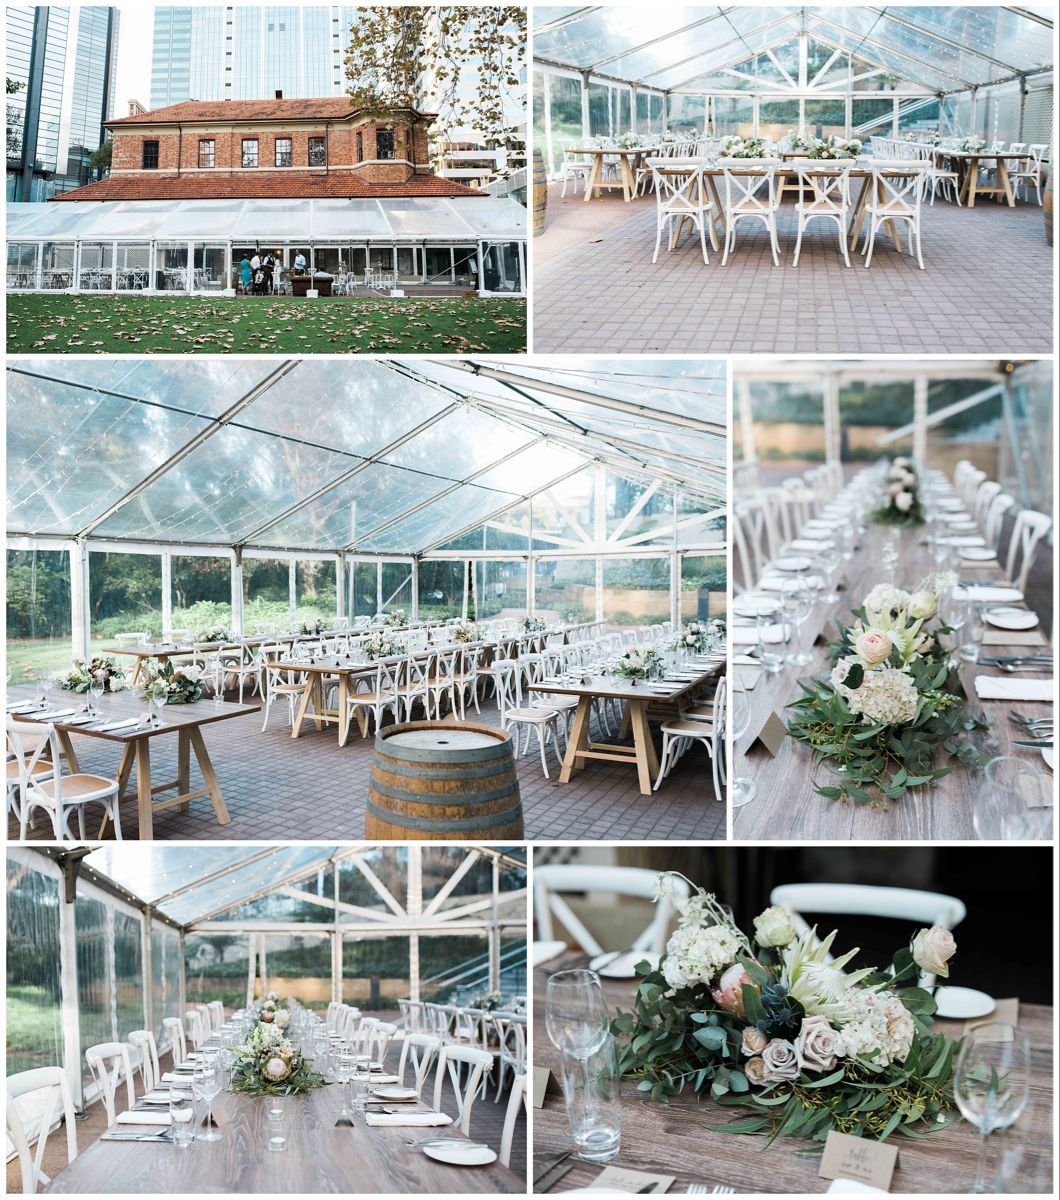 Lamont S Bishops House Wedding Reception In 2020 City Wedding Venues Perth Wedding Venues Estate Wedding Venue